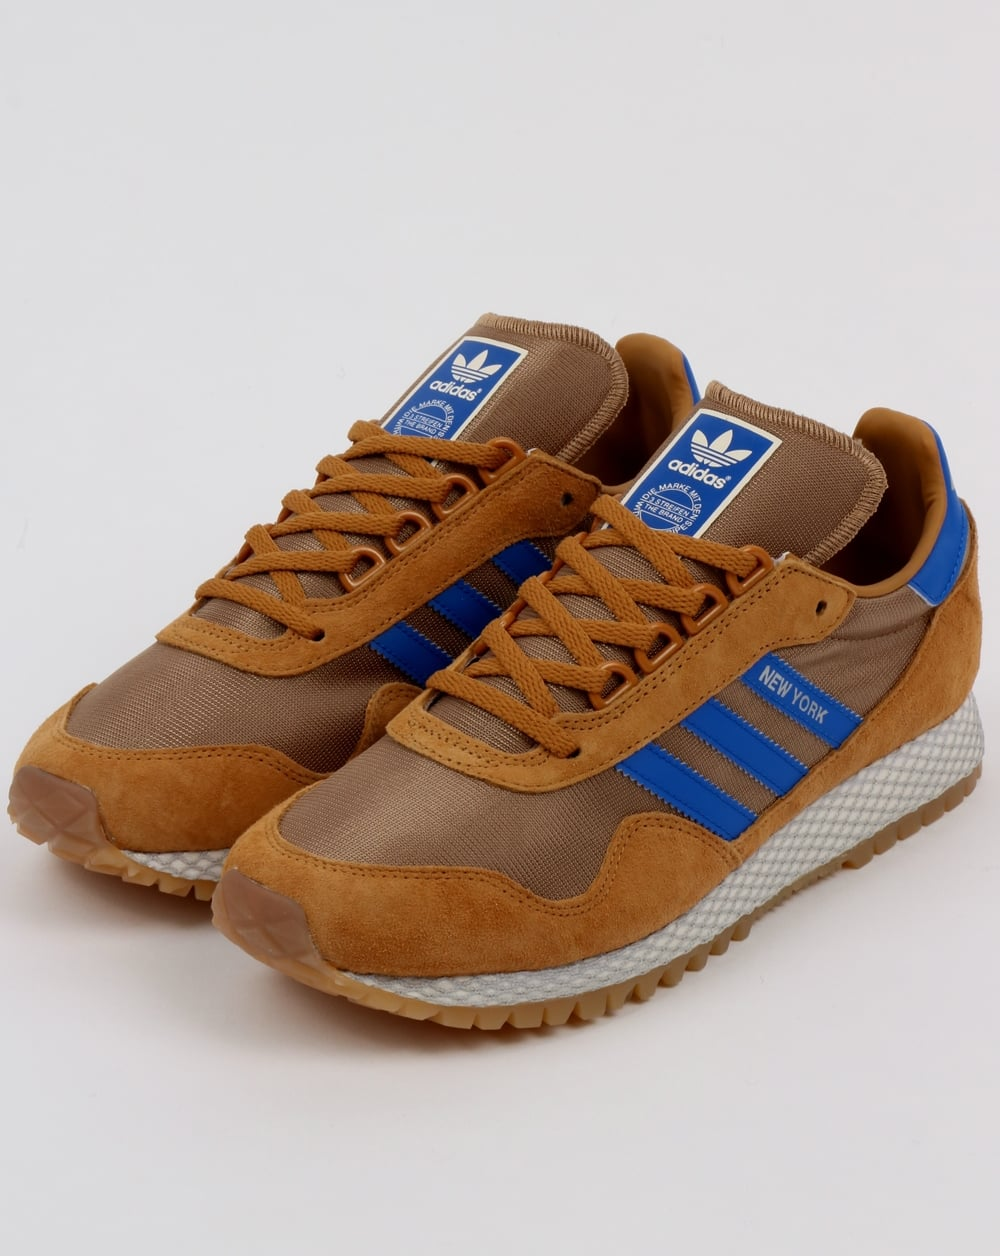 Brown New York Adidas Shoes